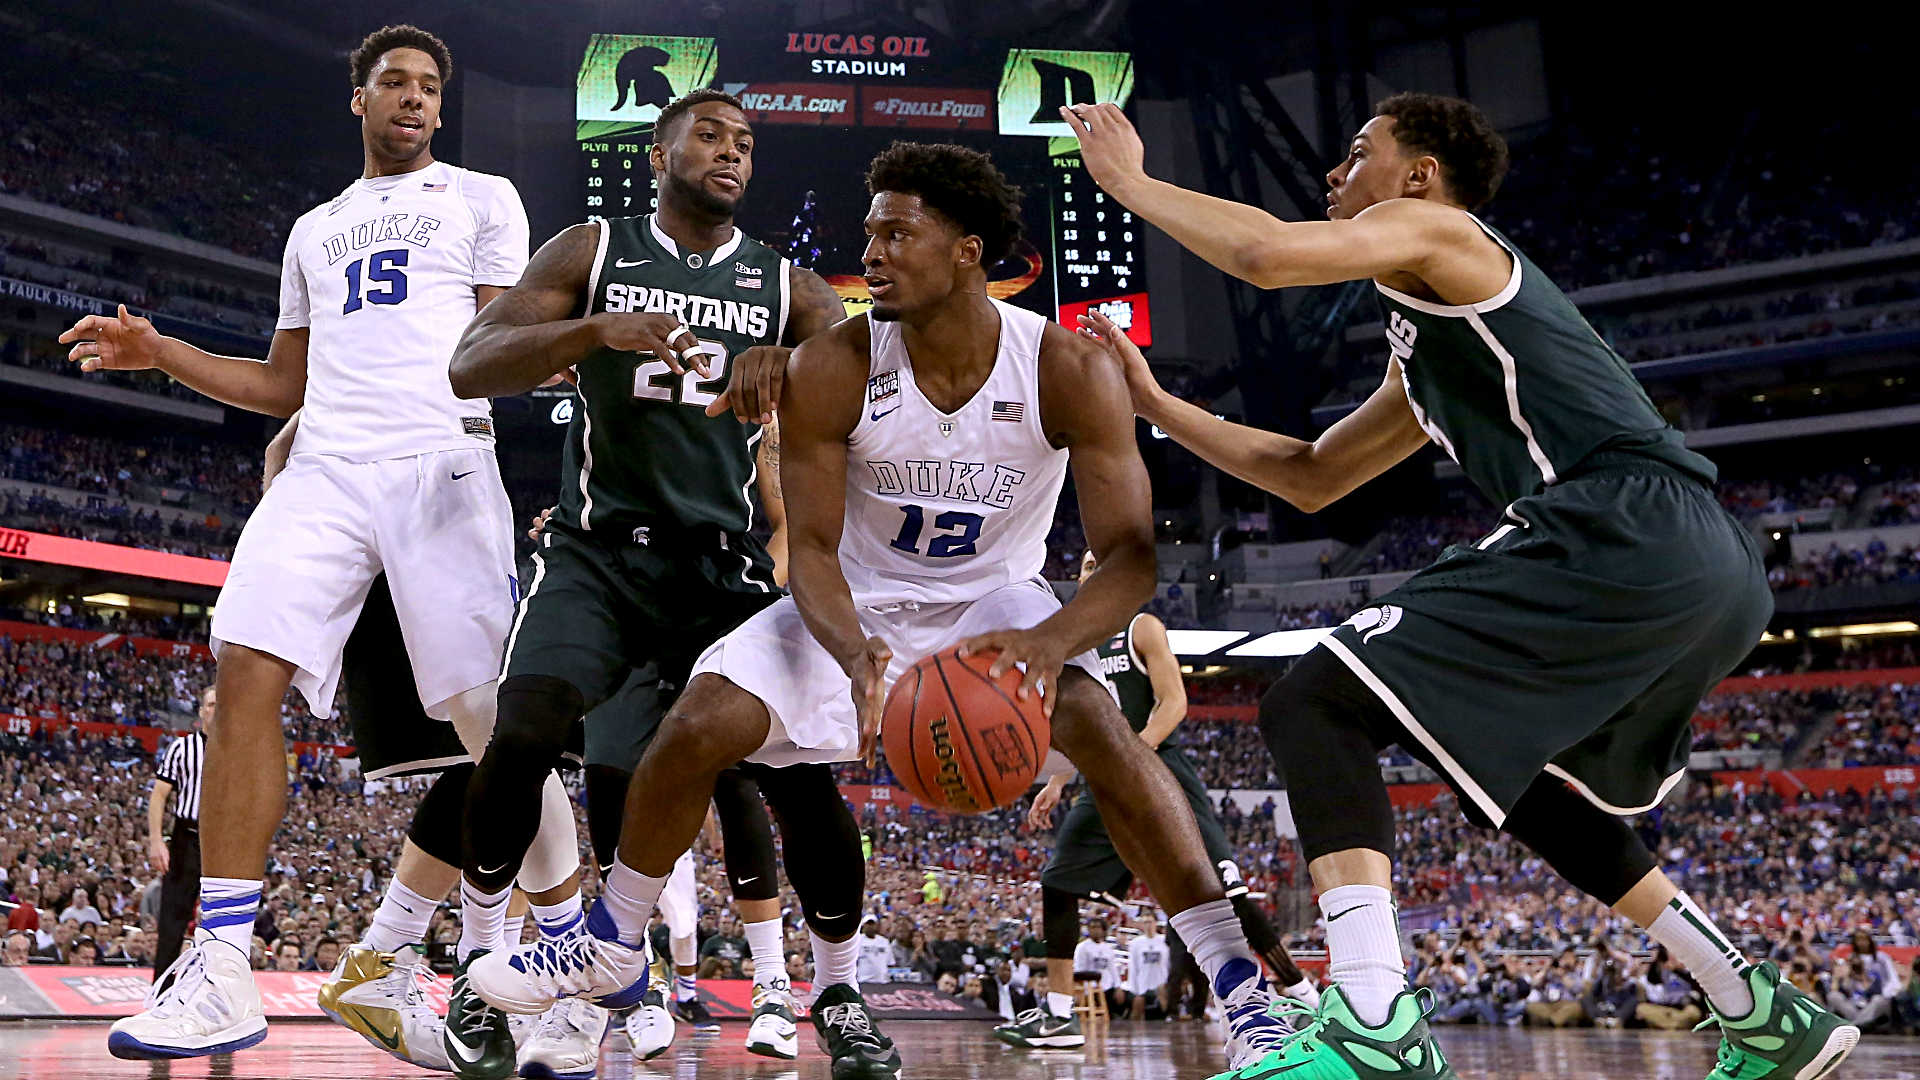 Duke-michigan-state-basketball-082416-getty-ftr_1xpcqmficdpv314l6zpzmkyjj2